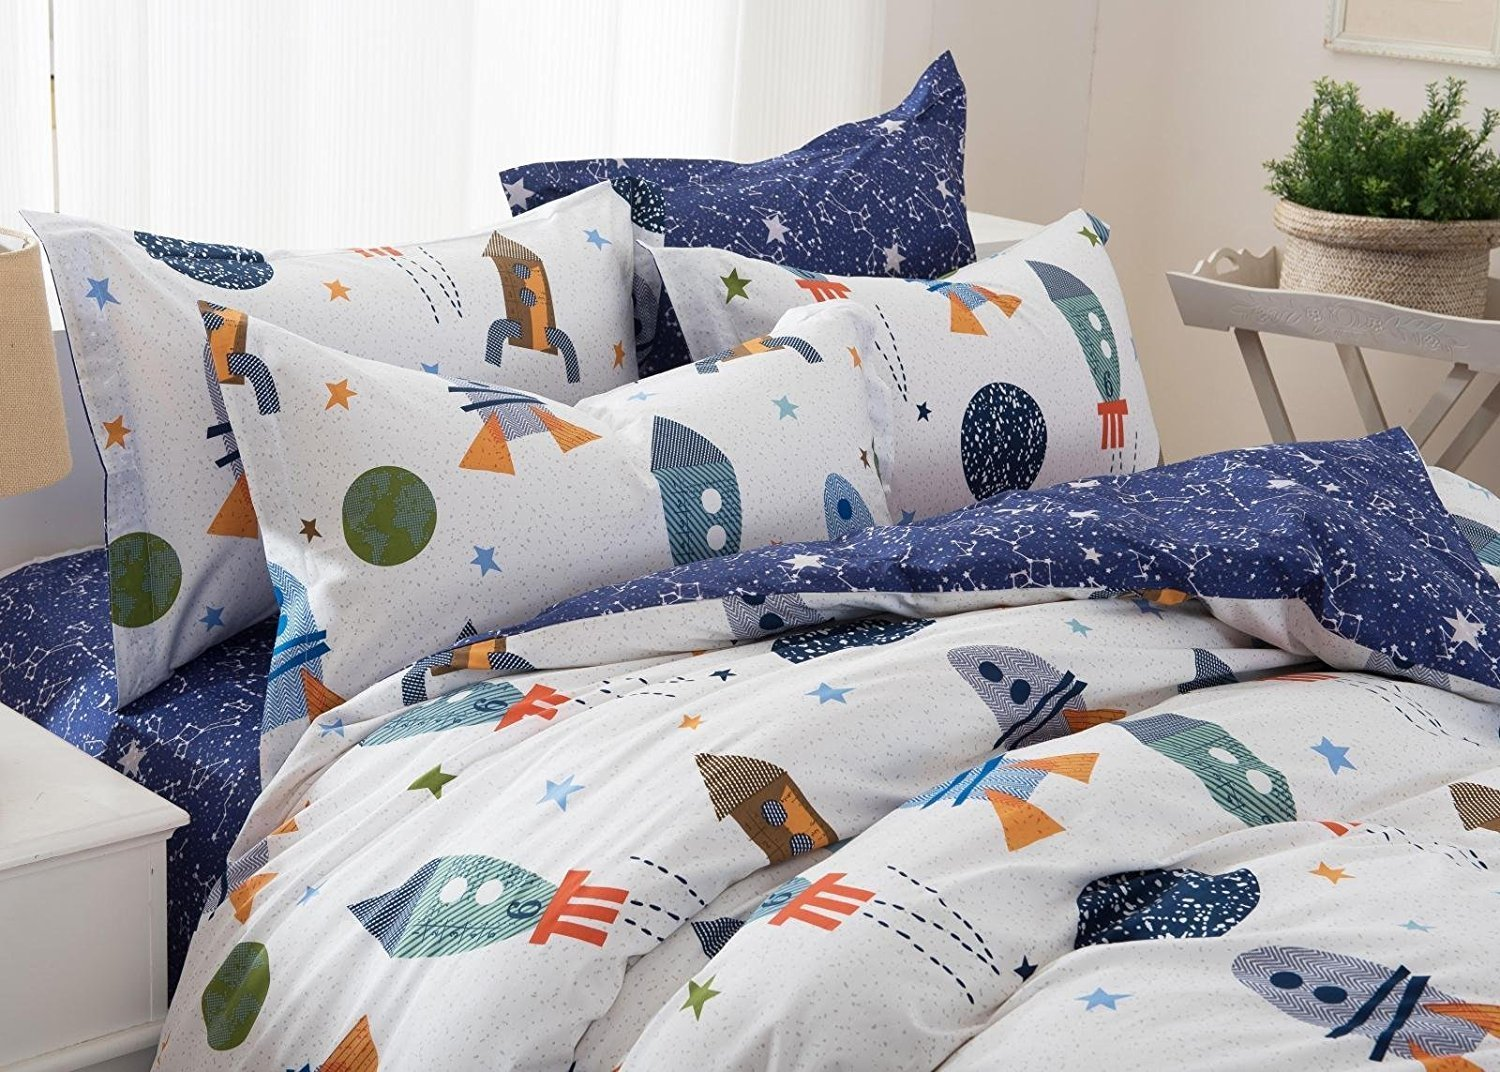 Brandream Galaxy Bedding Set for Boys Space Bedding Set Soft Cotton Duvet Cover Set 3-Piece Queen Size